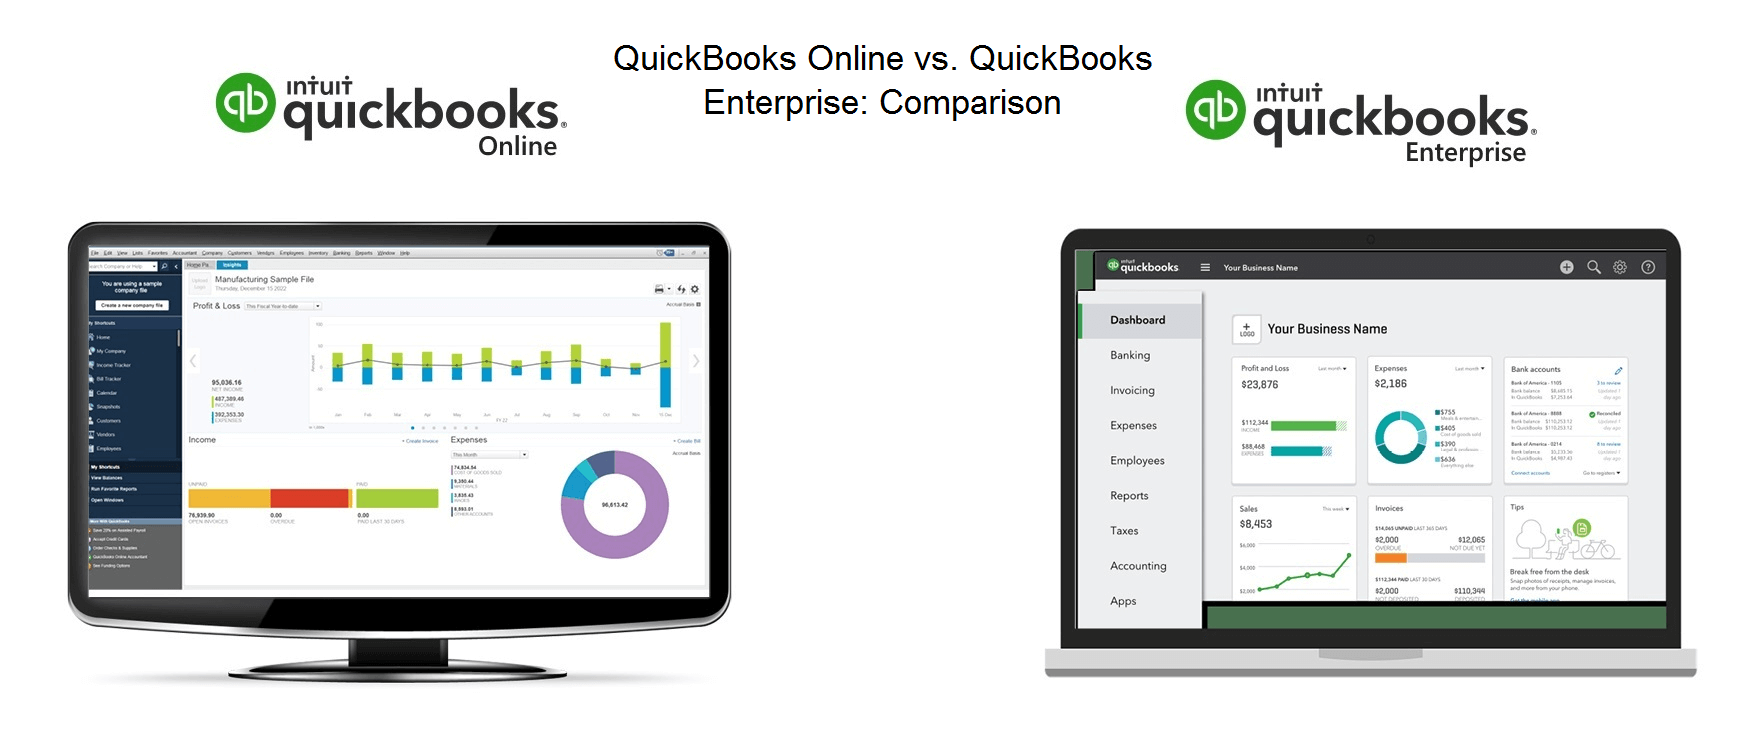 QuickBooks Online vs. QuickBooks Enterprise Comparison